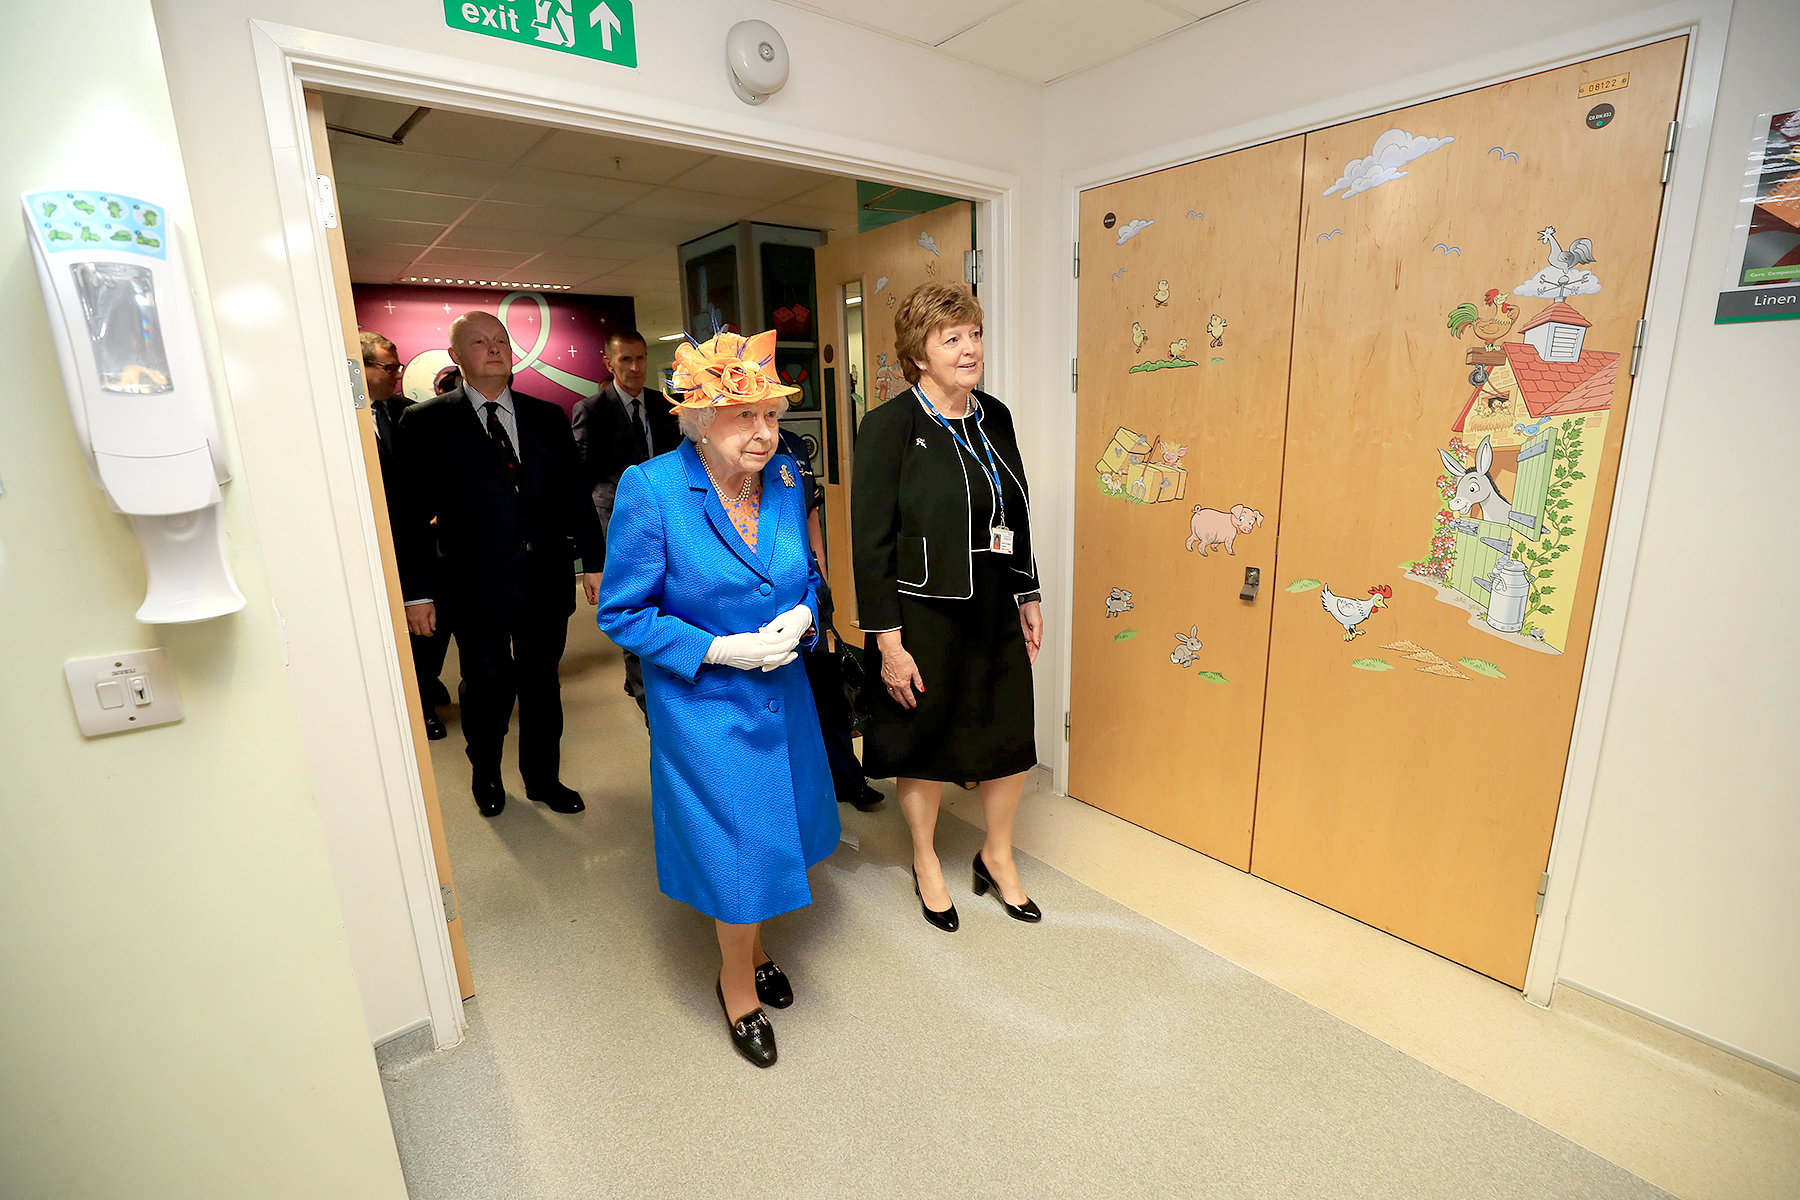 Queen Elizabeth II escorted by Kathy Cowell (R) Chairman of the Central Manchester University Hospital, during a visit to the Royal Manchester Children's Hospital on May 25, 2017 in Manchester, England.